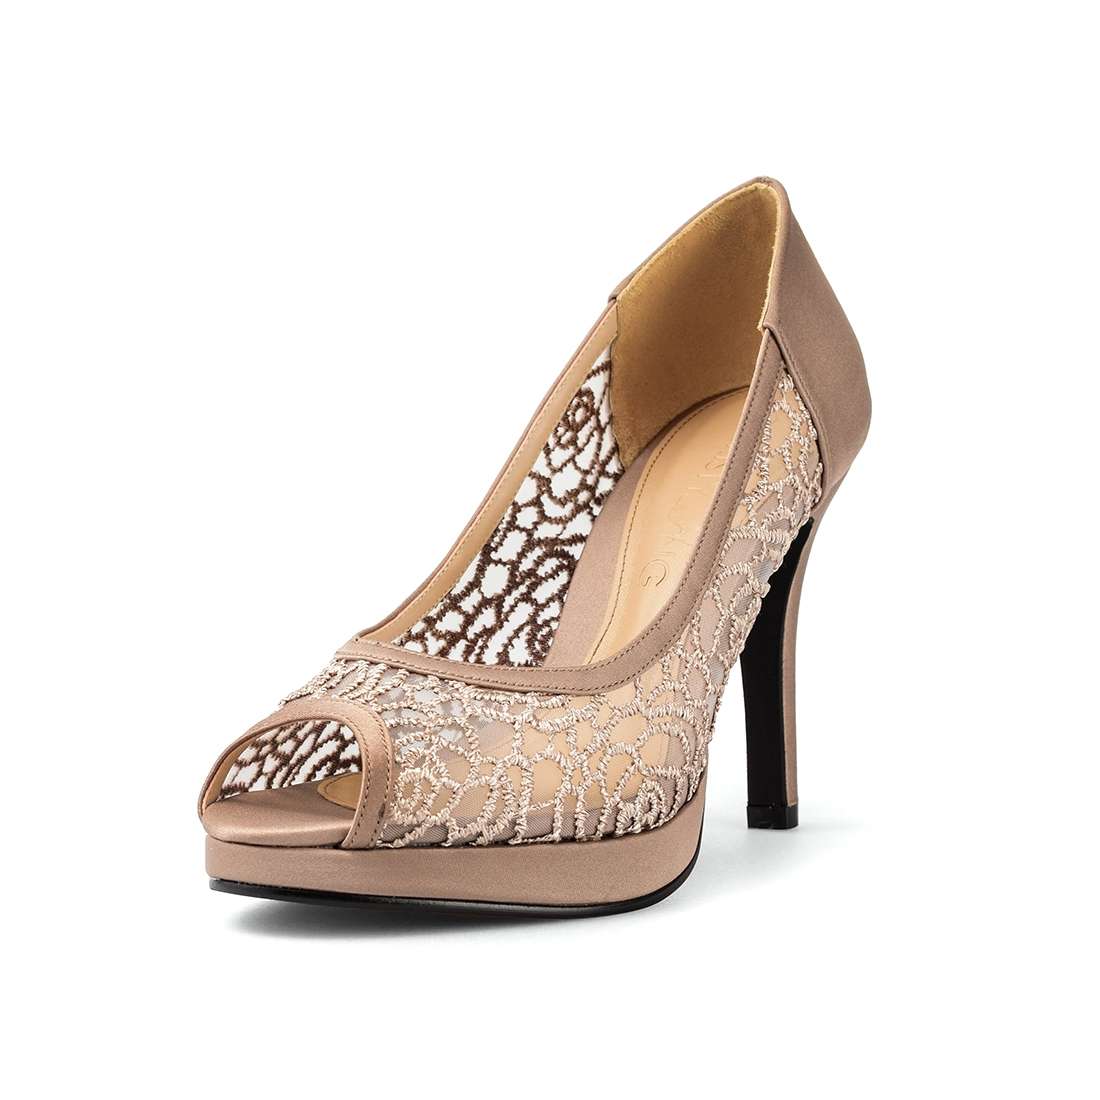 edwina_taupe_lace_heel_side_view-1100x1100_0